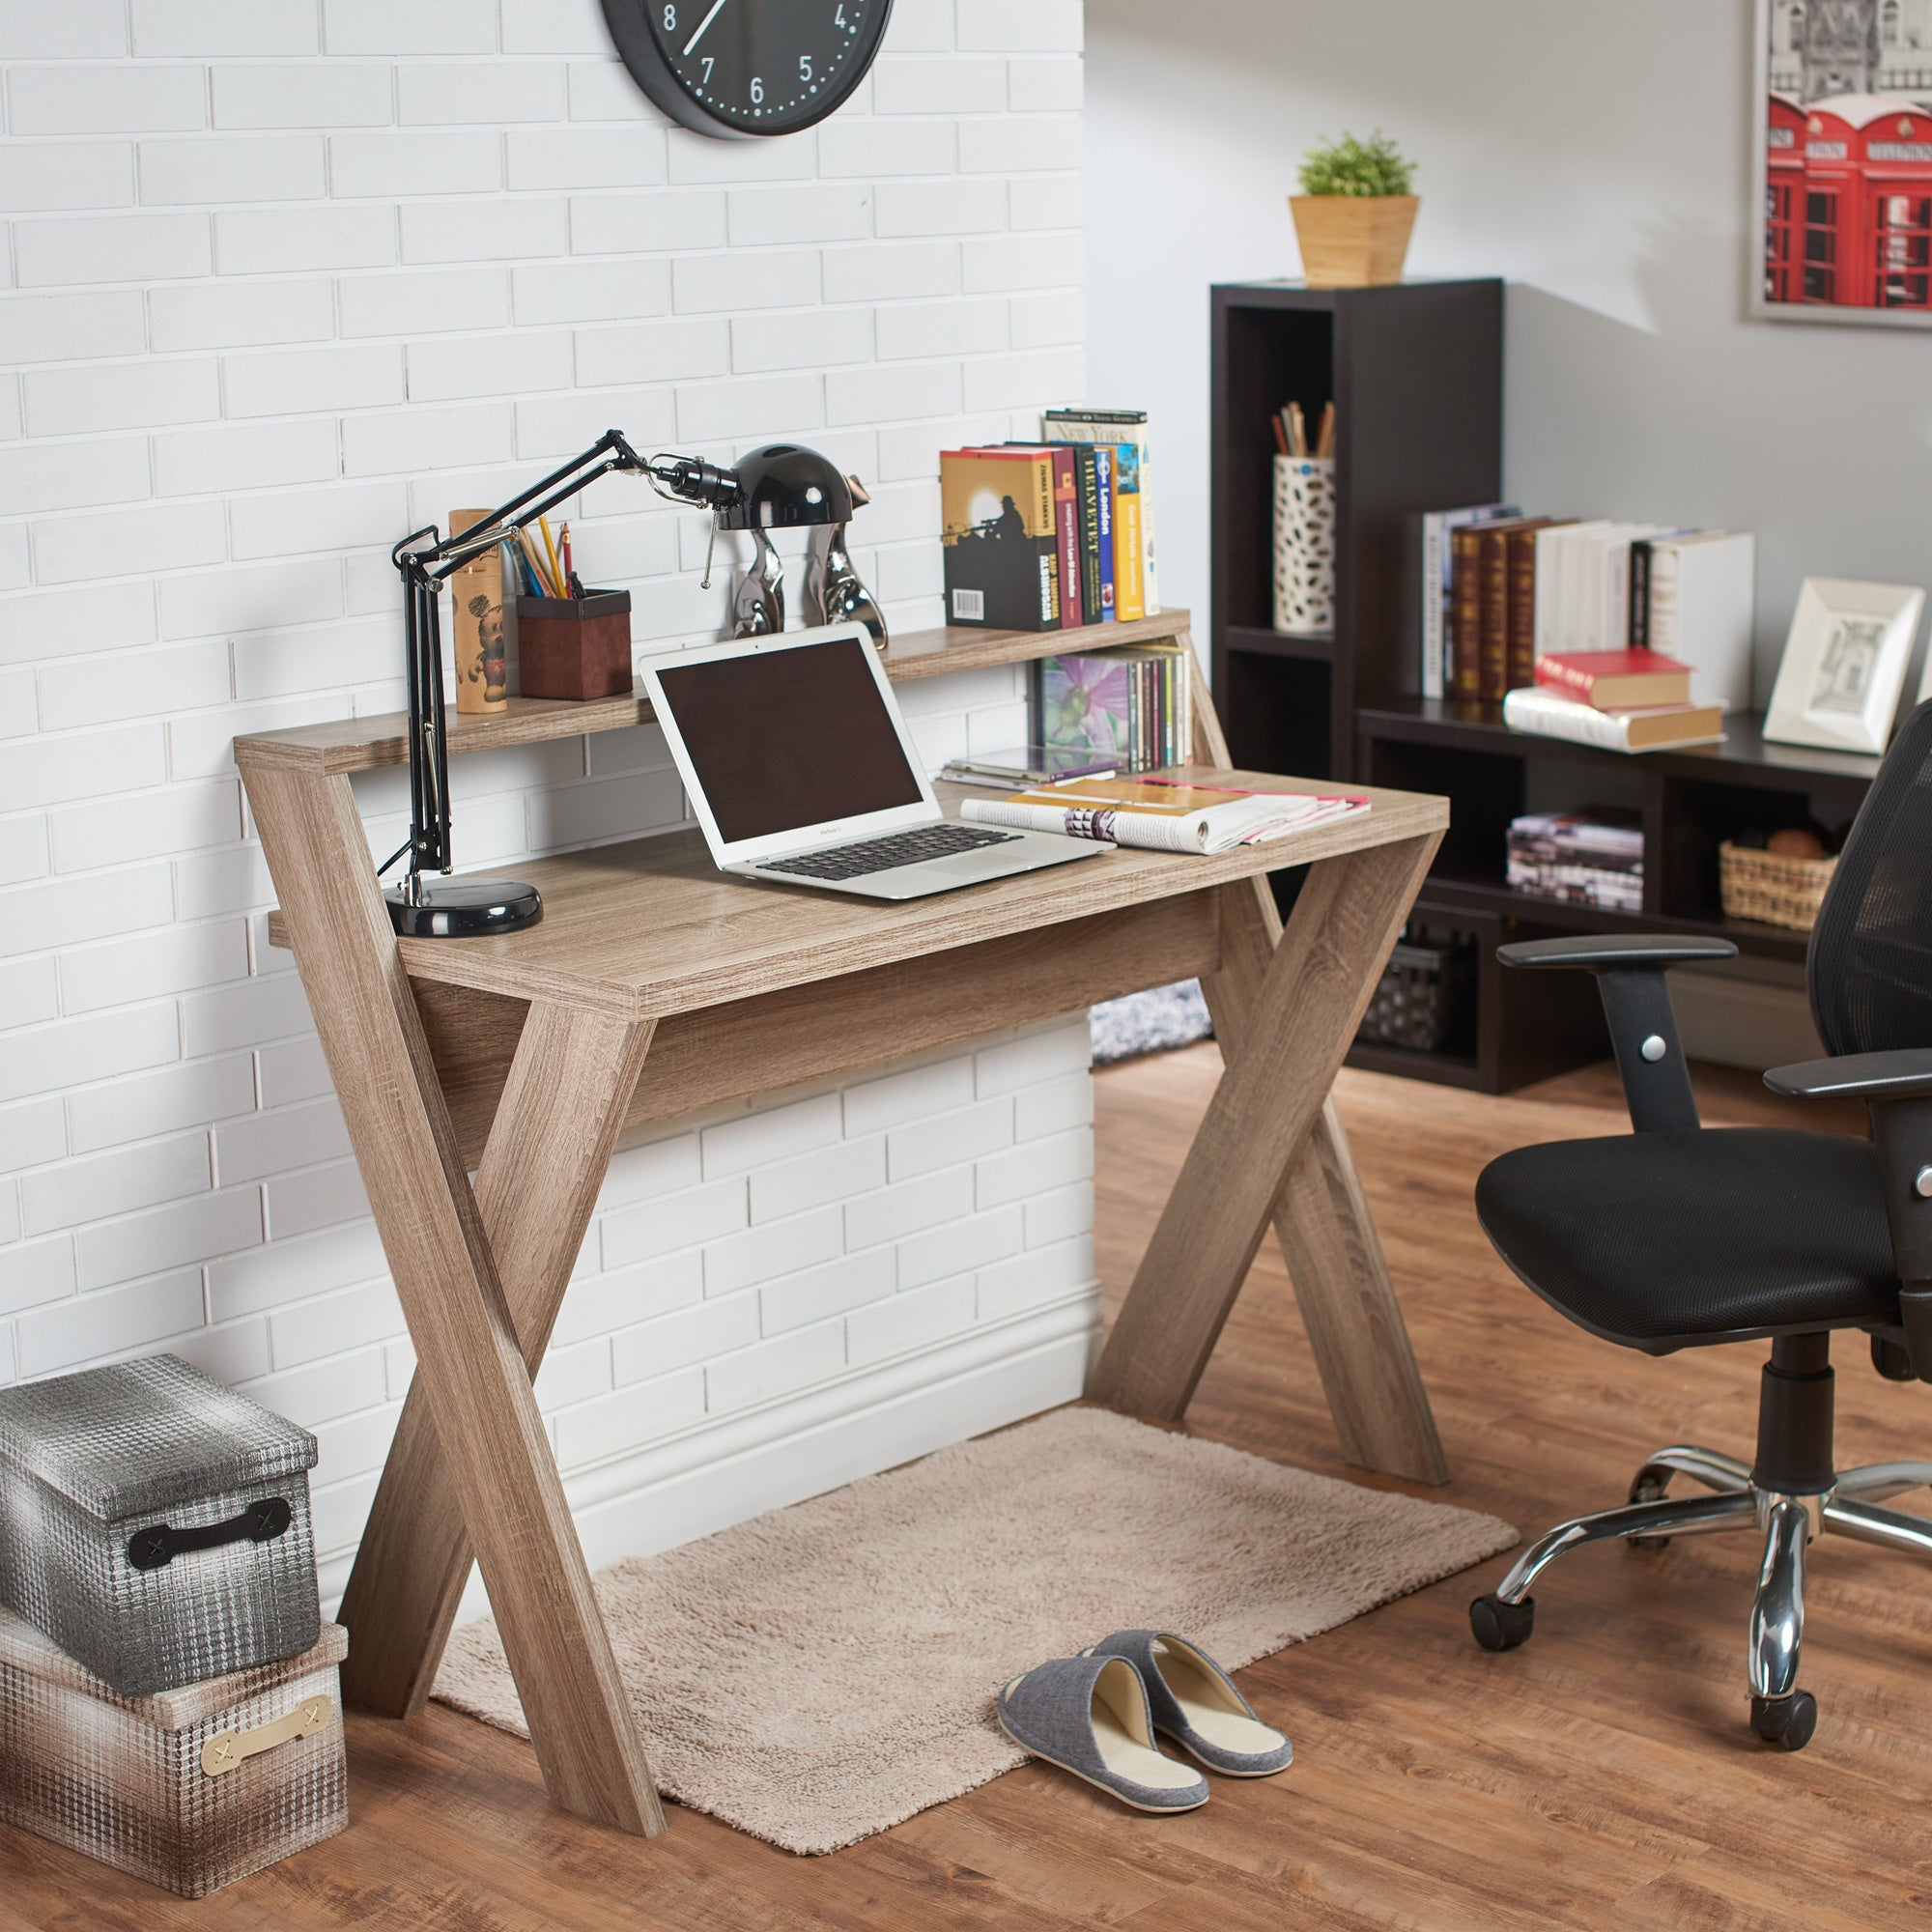 Furniture of America Intersecting Home/ Office Desk - Free Shipping Today -  Overstock.com - 15015760